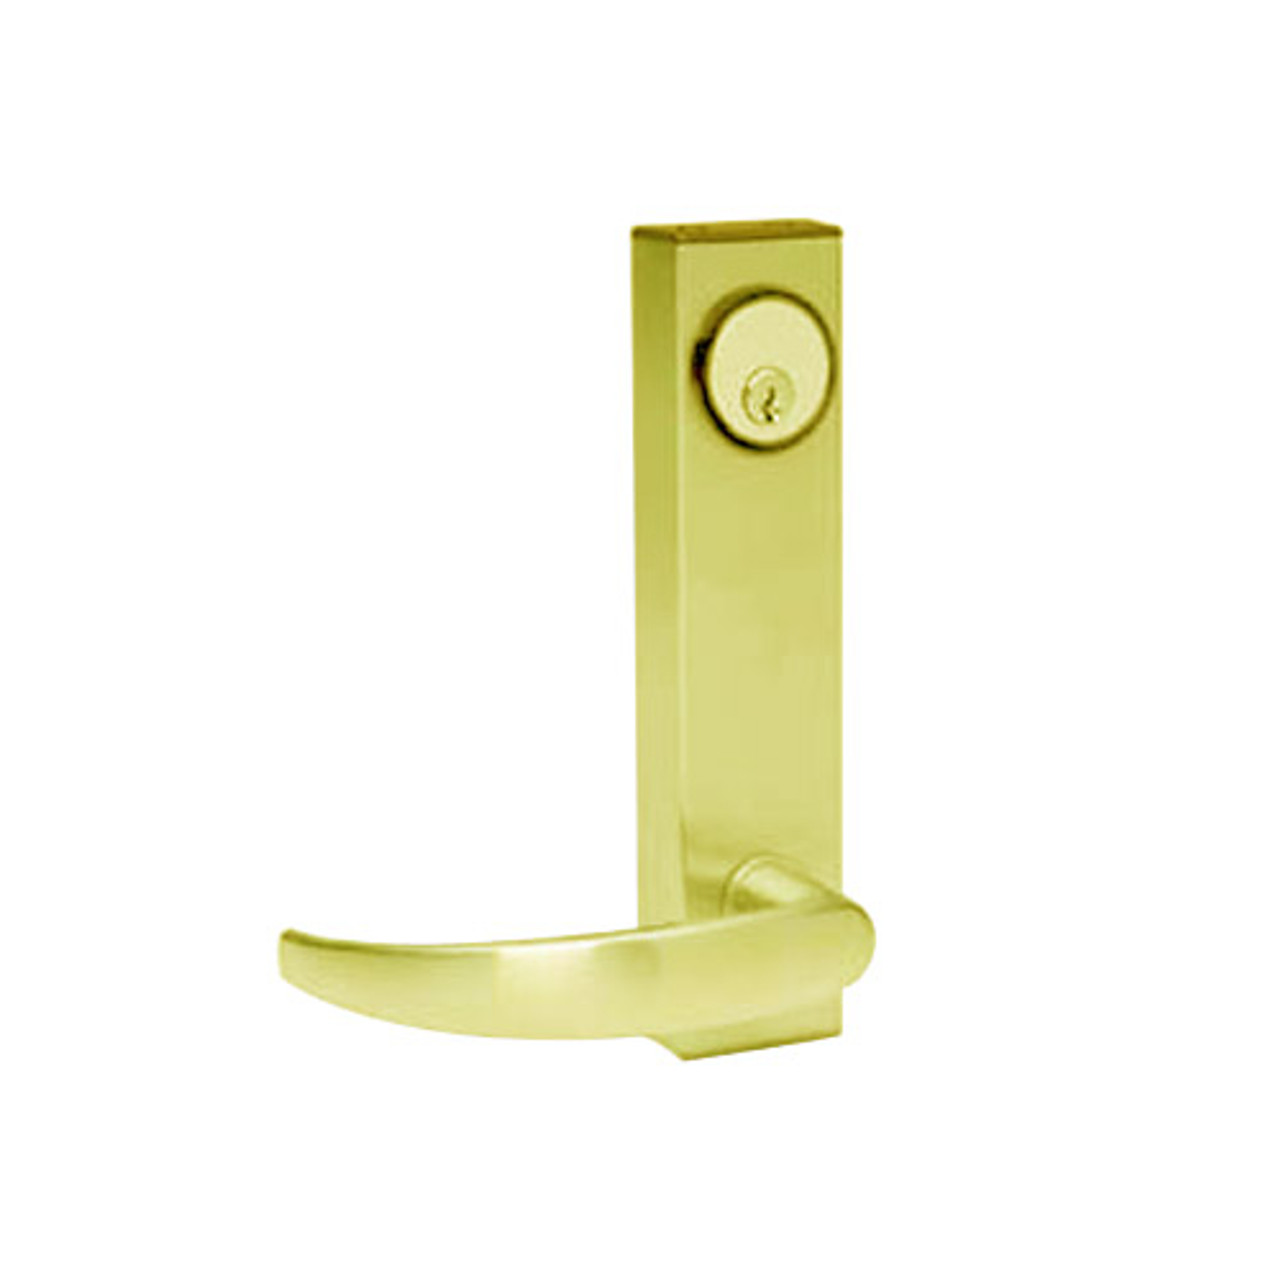 3080E-01-0-37-35 US3 Adams Rite Electrified Entry Trim with Curve Lever in Bright Brass Finish